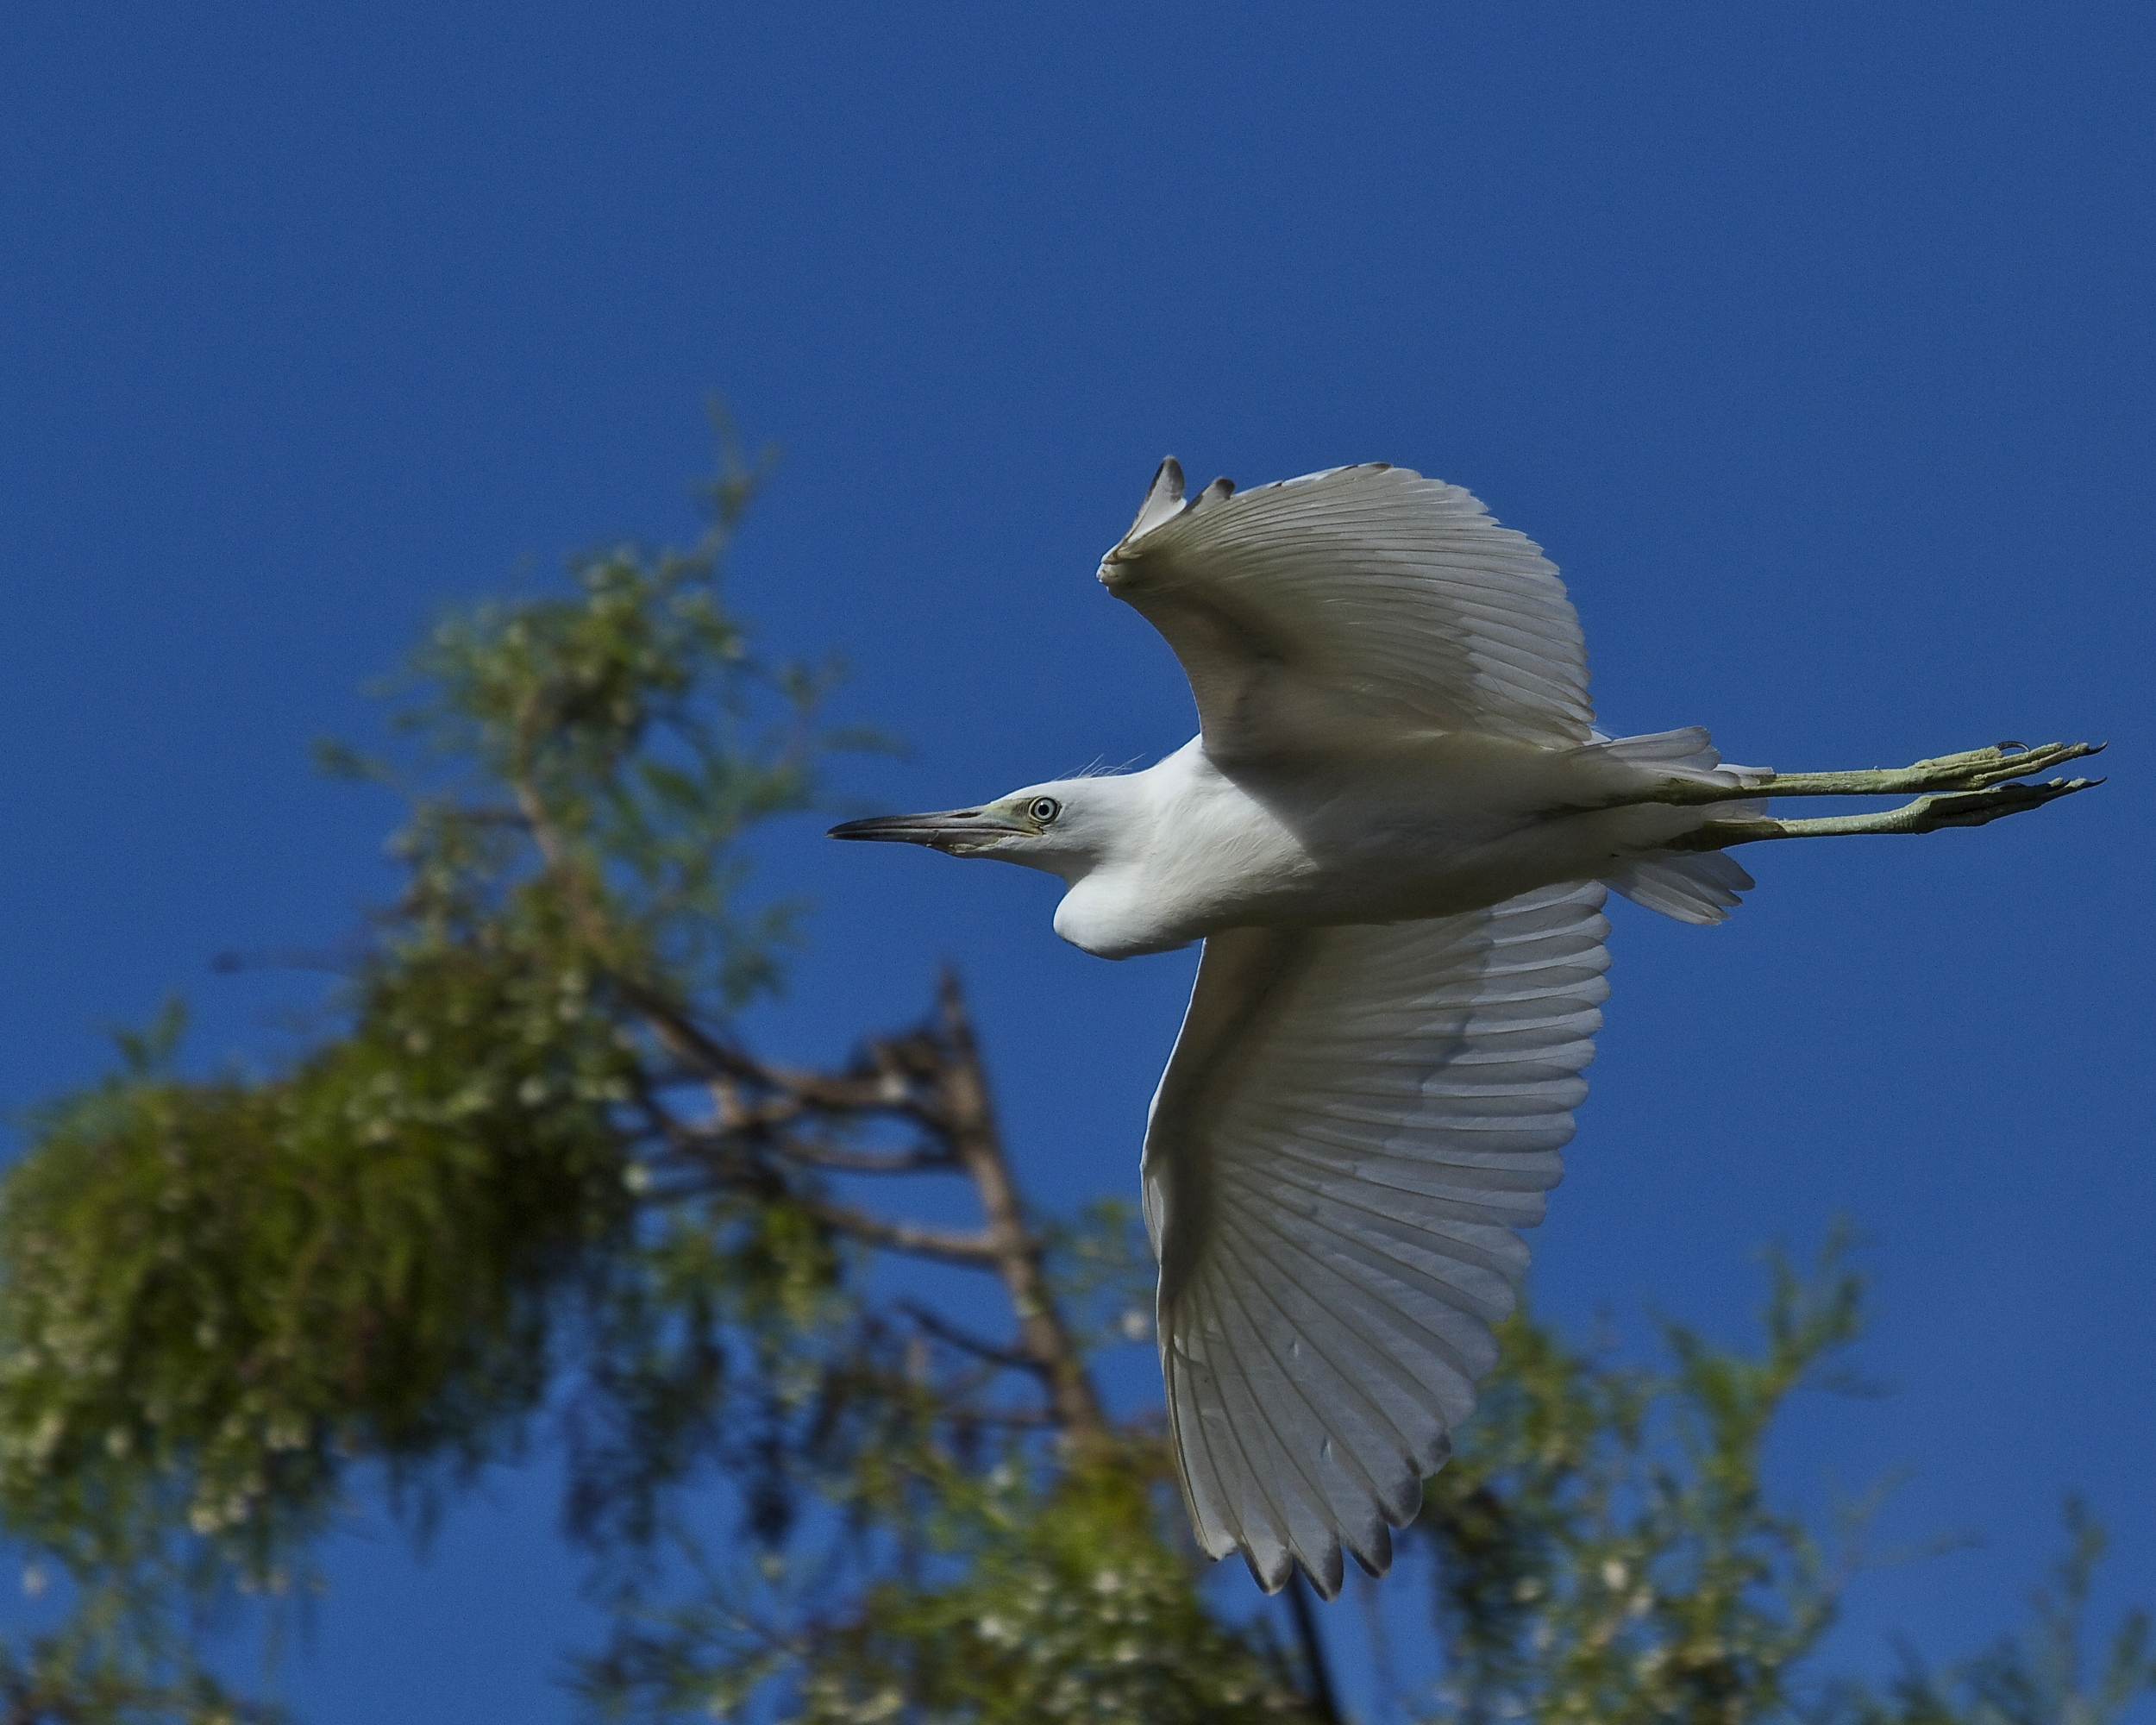 Come on, have a piece of pumpkin pie and let's watch the sky dancers! Little Blue Heron (Juvenile) glides by.